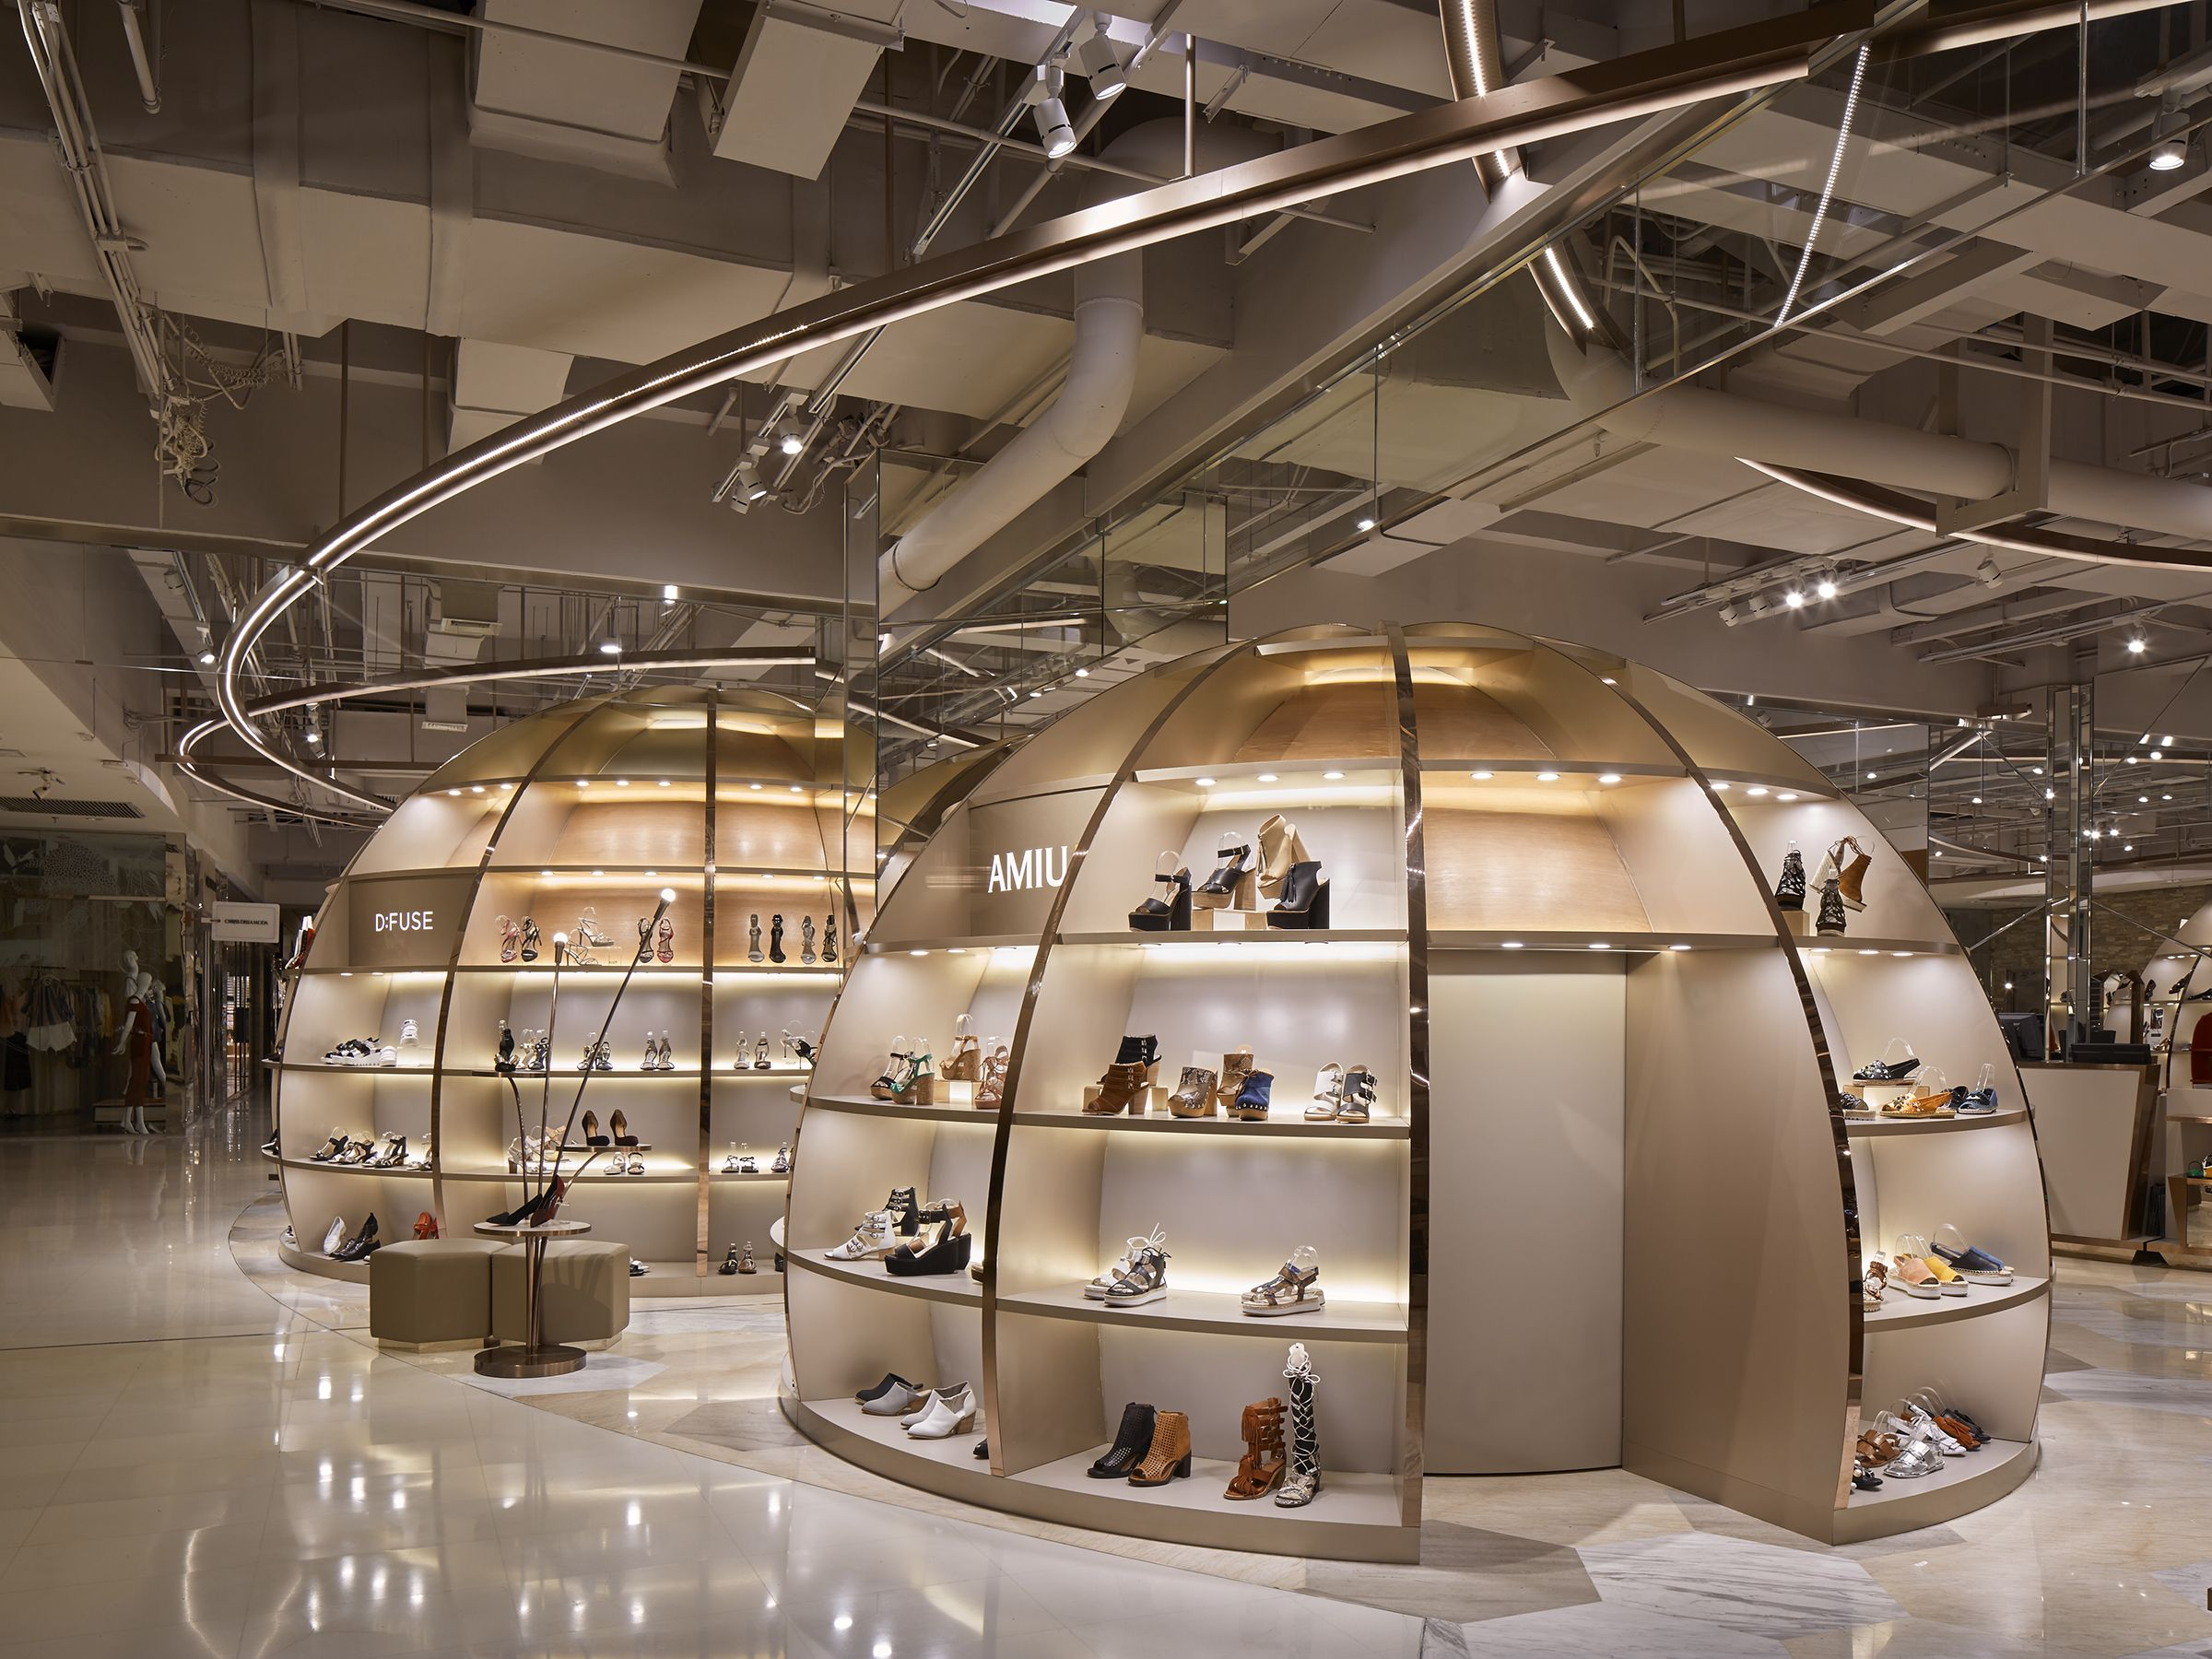 Chaoyang Joycity Beijing China 2F Shoes Designed By Garde Coltd Masahito